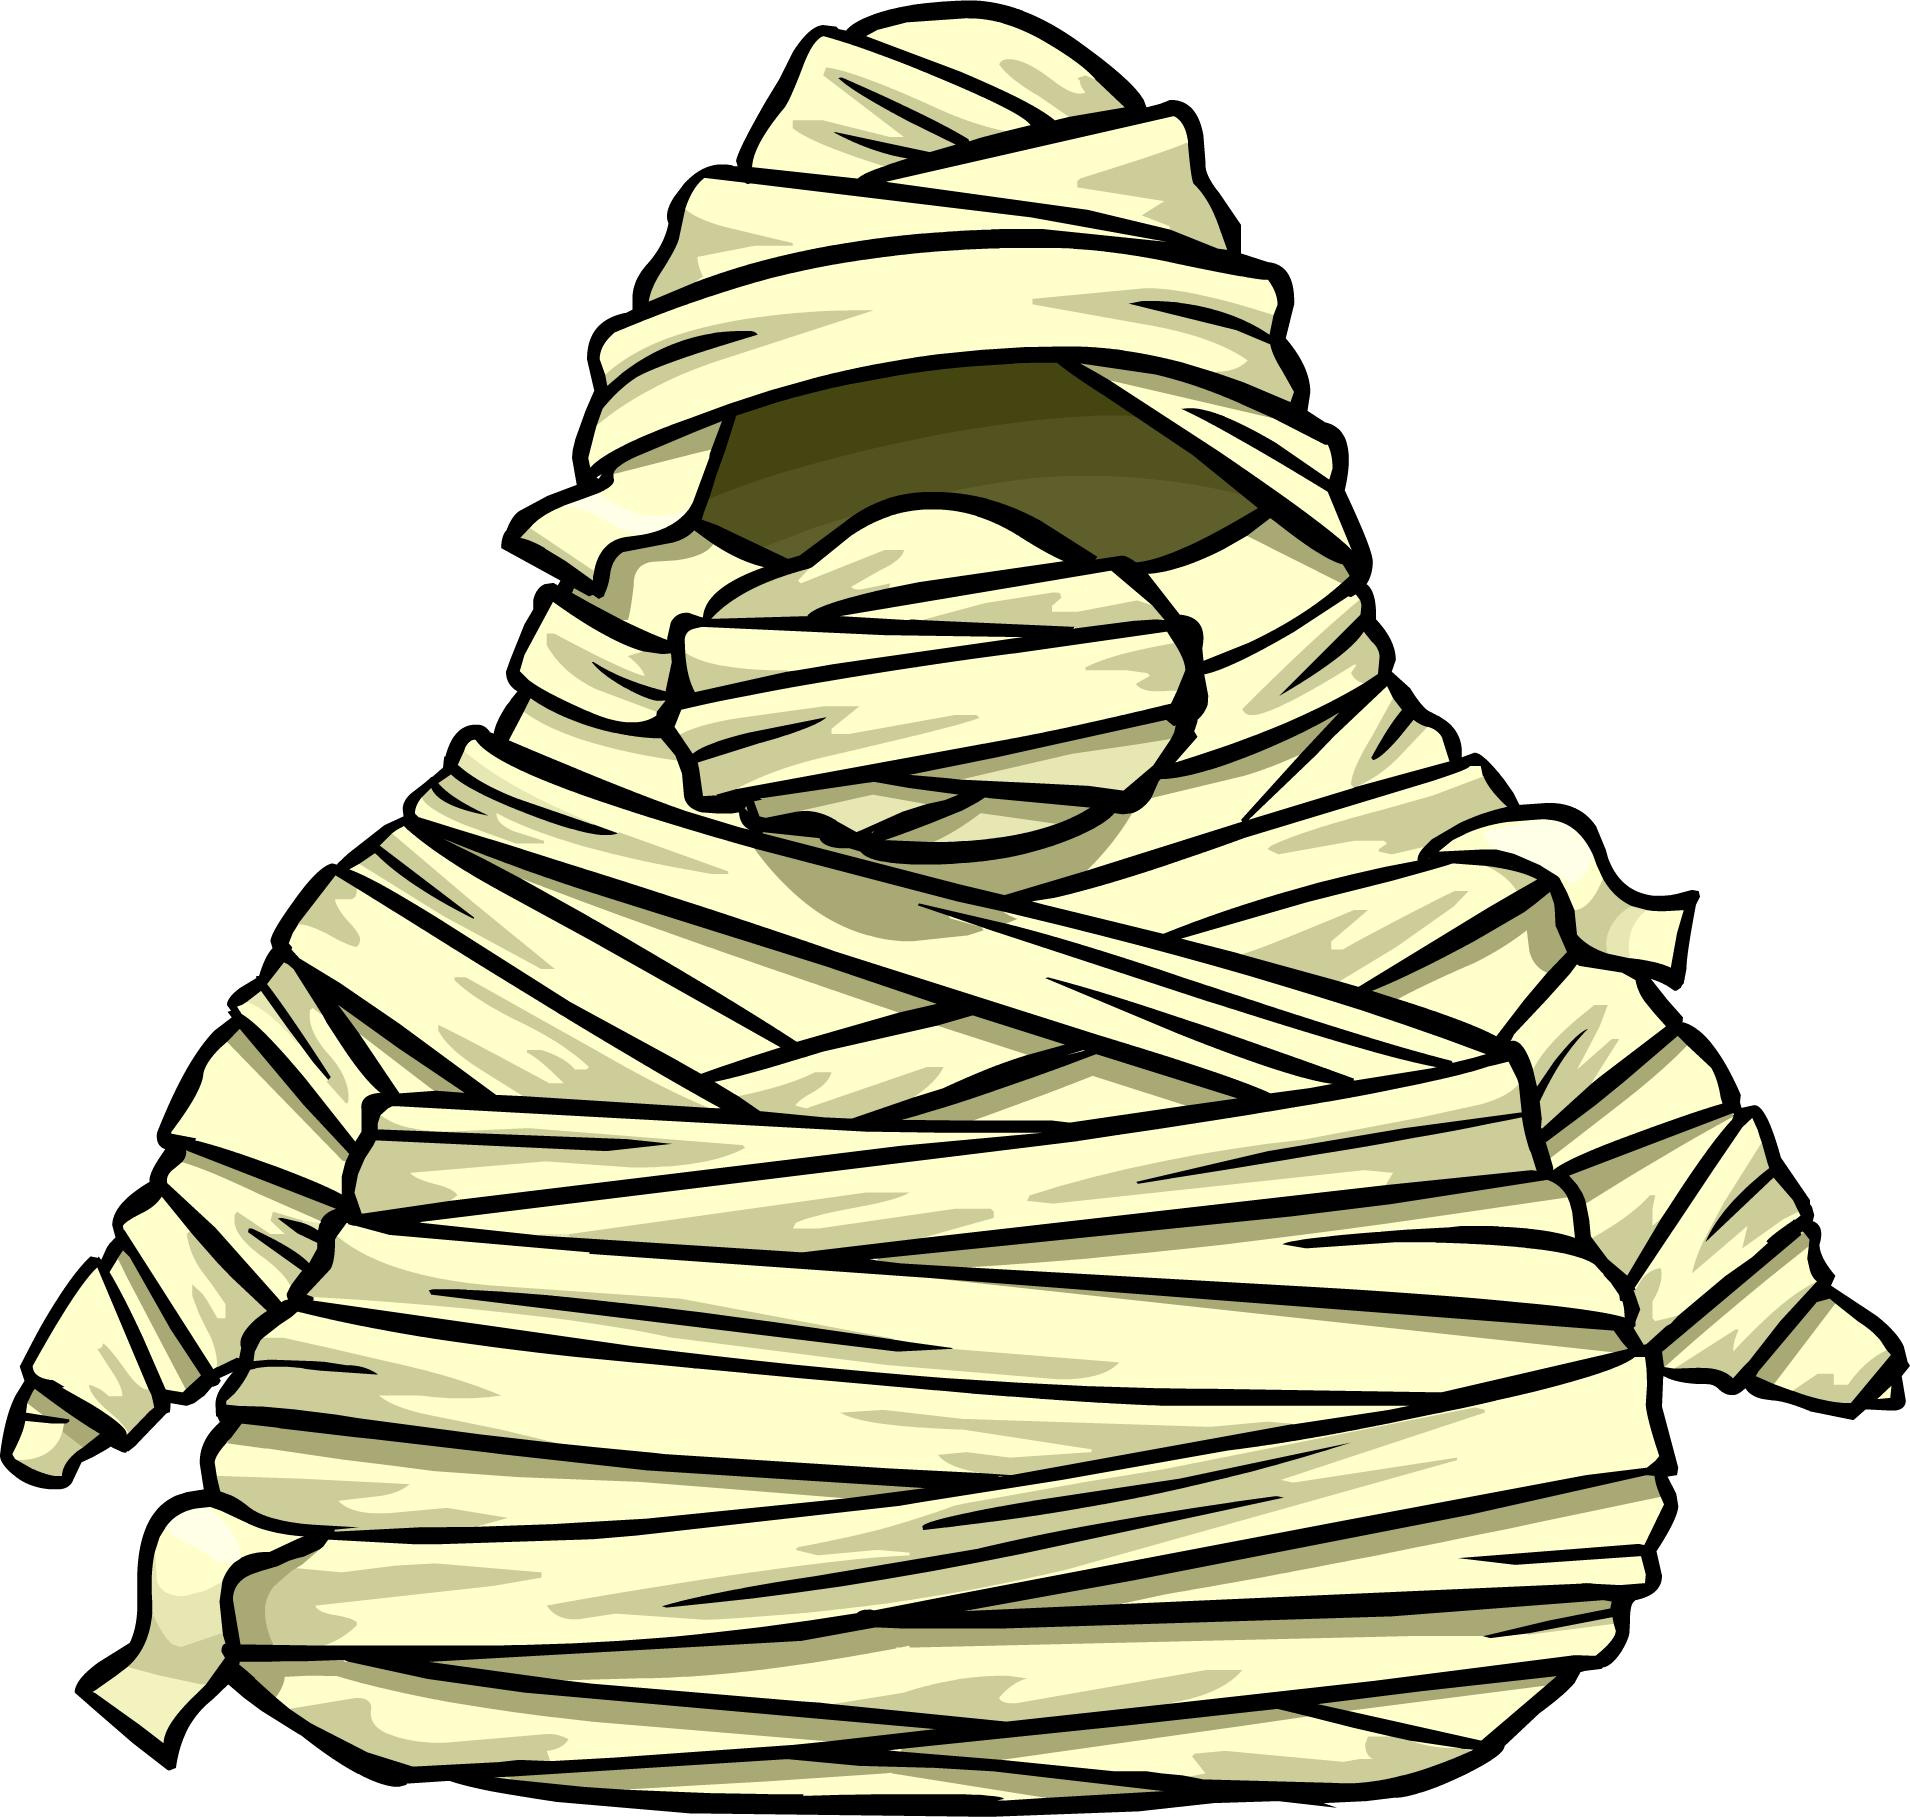 Mummy clipart free images 2 image 3 2